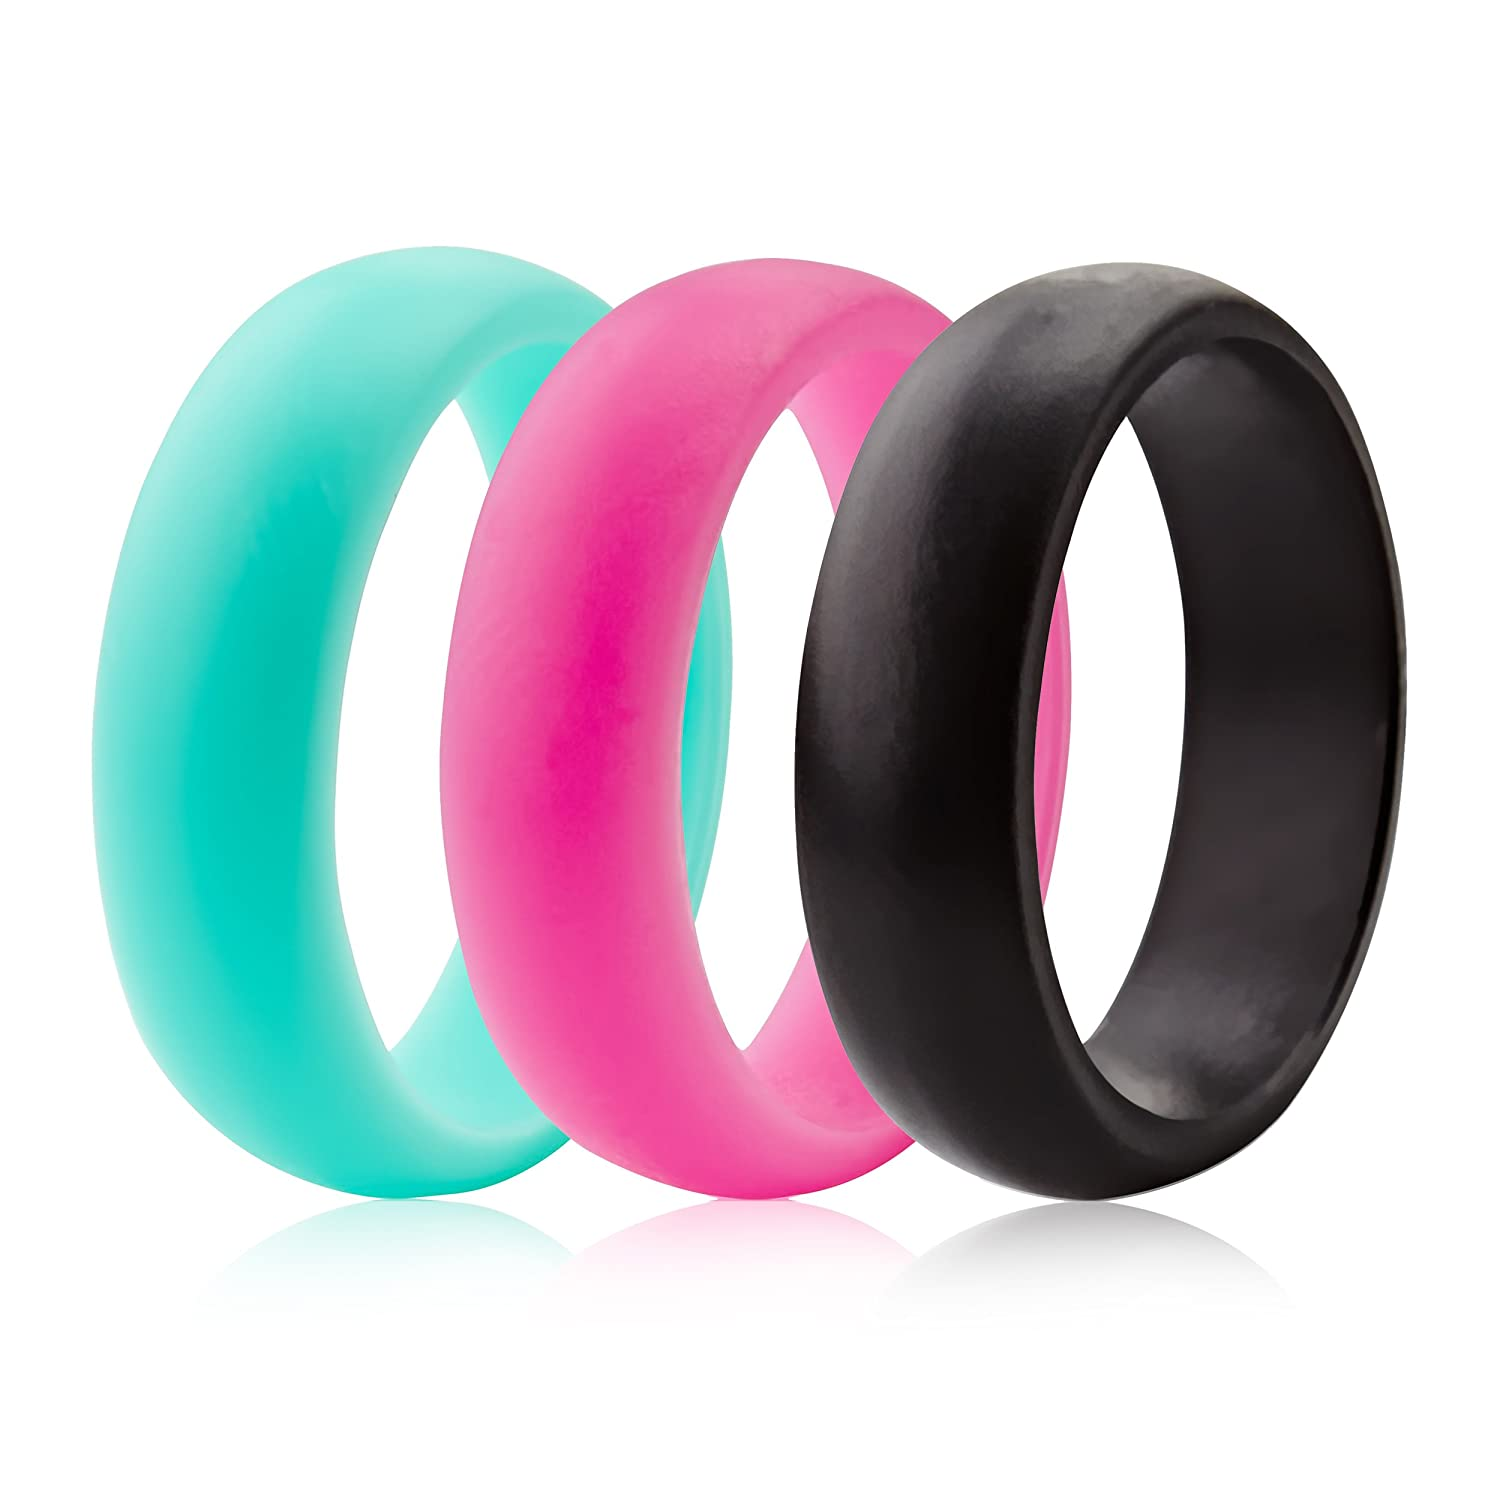 Amazon.com : Silicone Rings Wedding Bands For Women : Sports & Outdoors